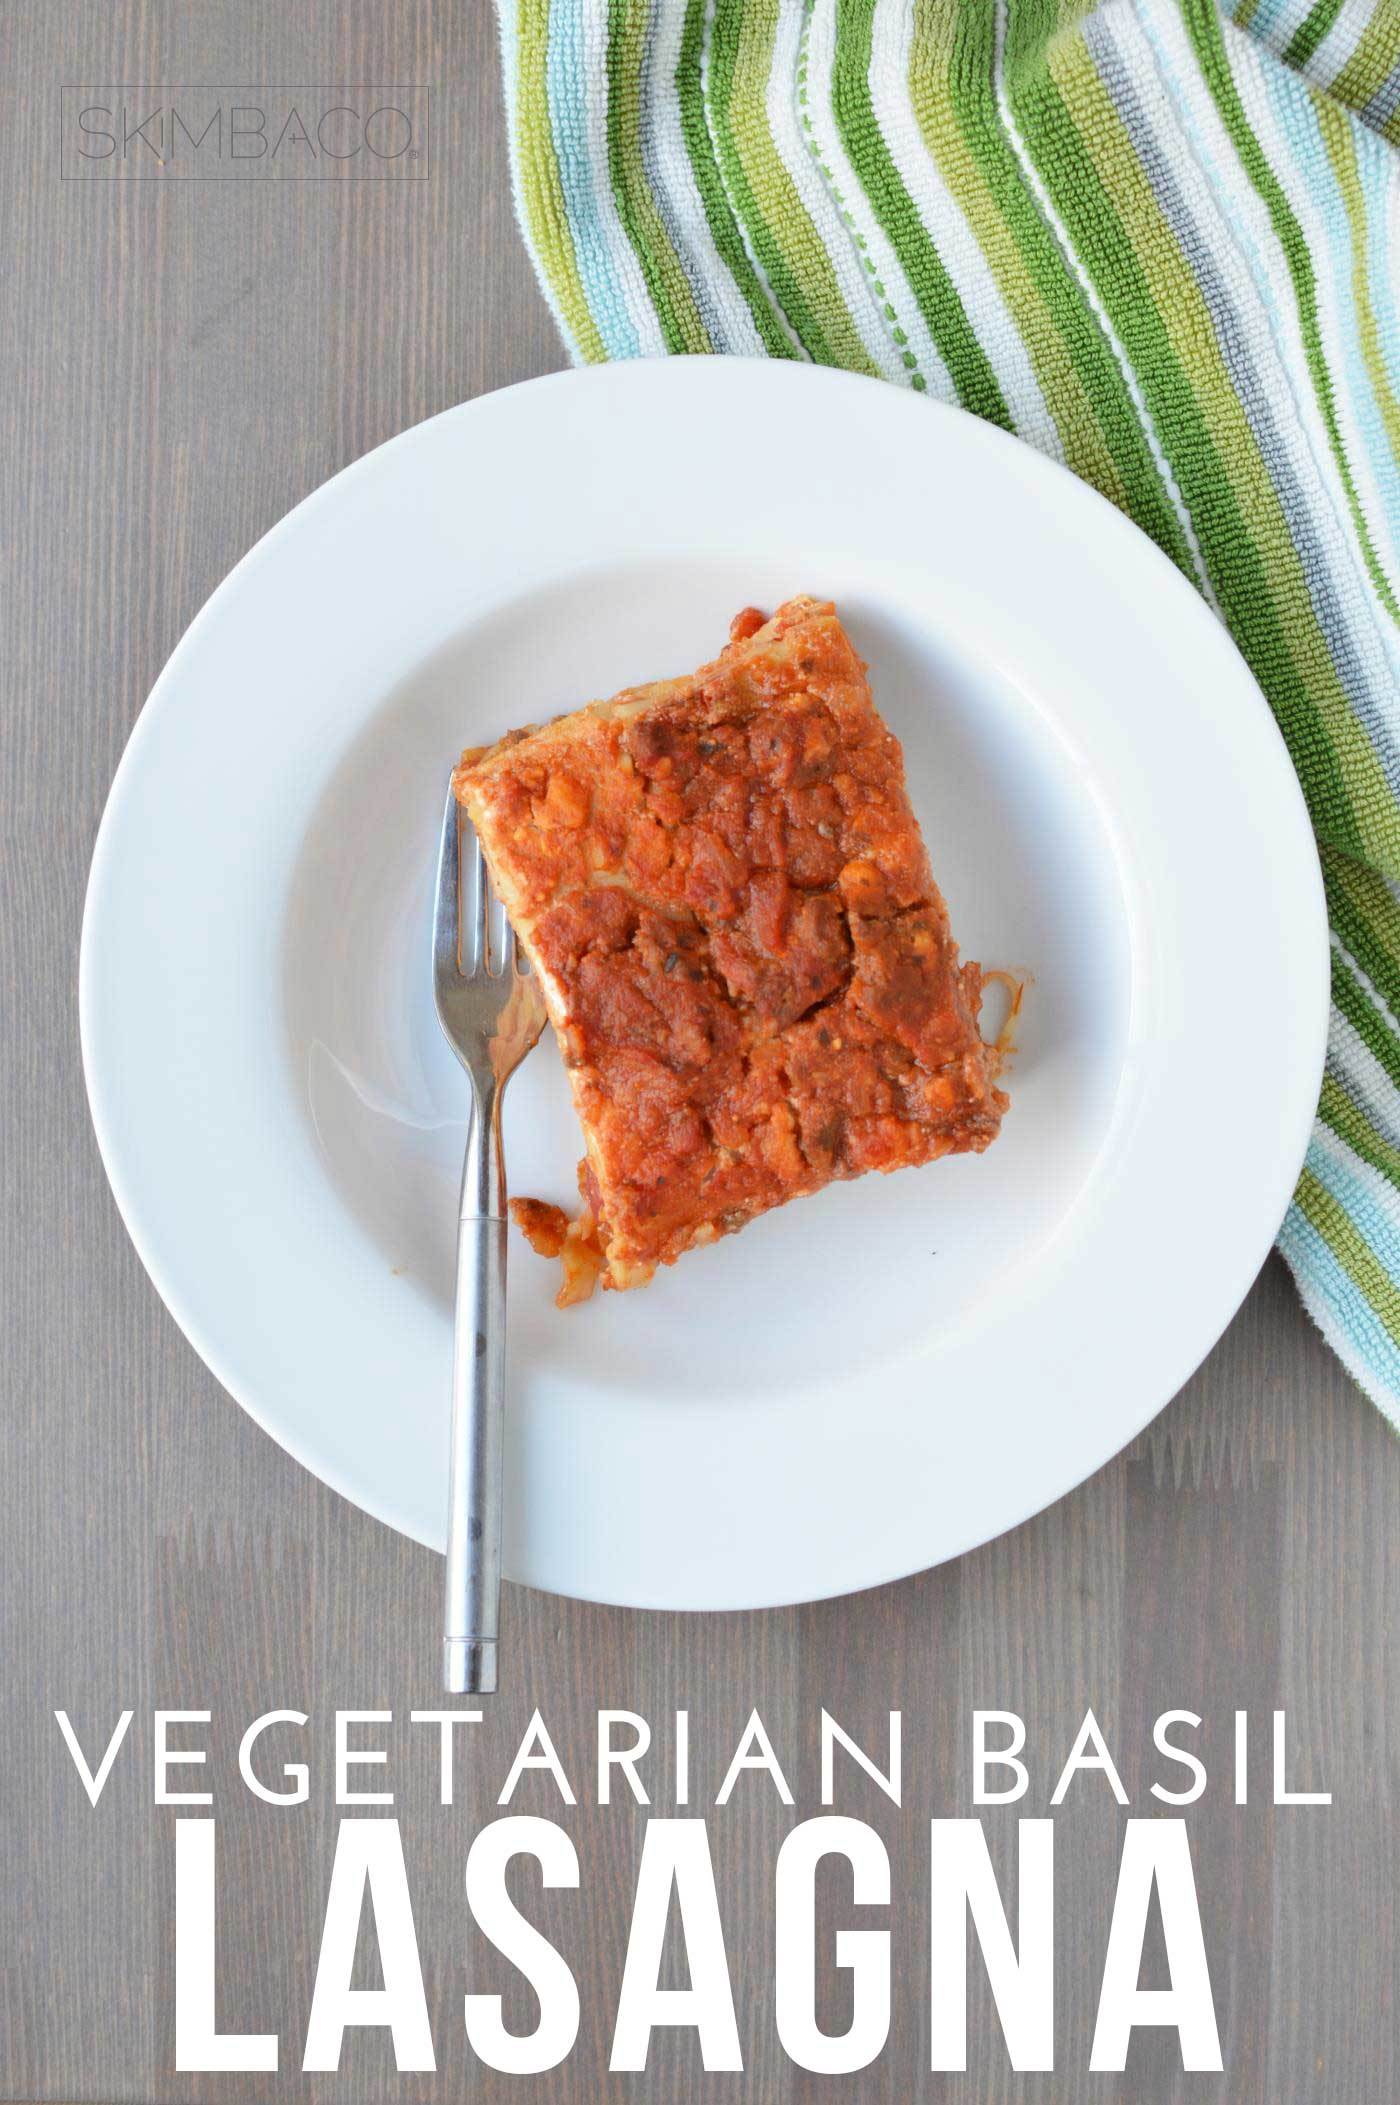 Vegetarian lasagna with basil essential oils. Recipe via @skimbaco